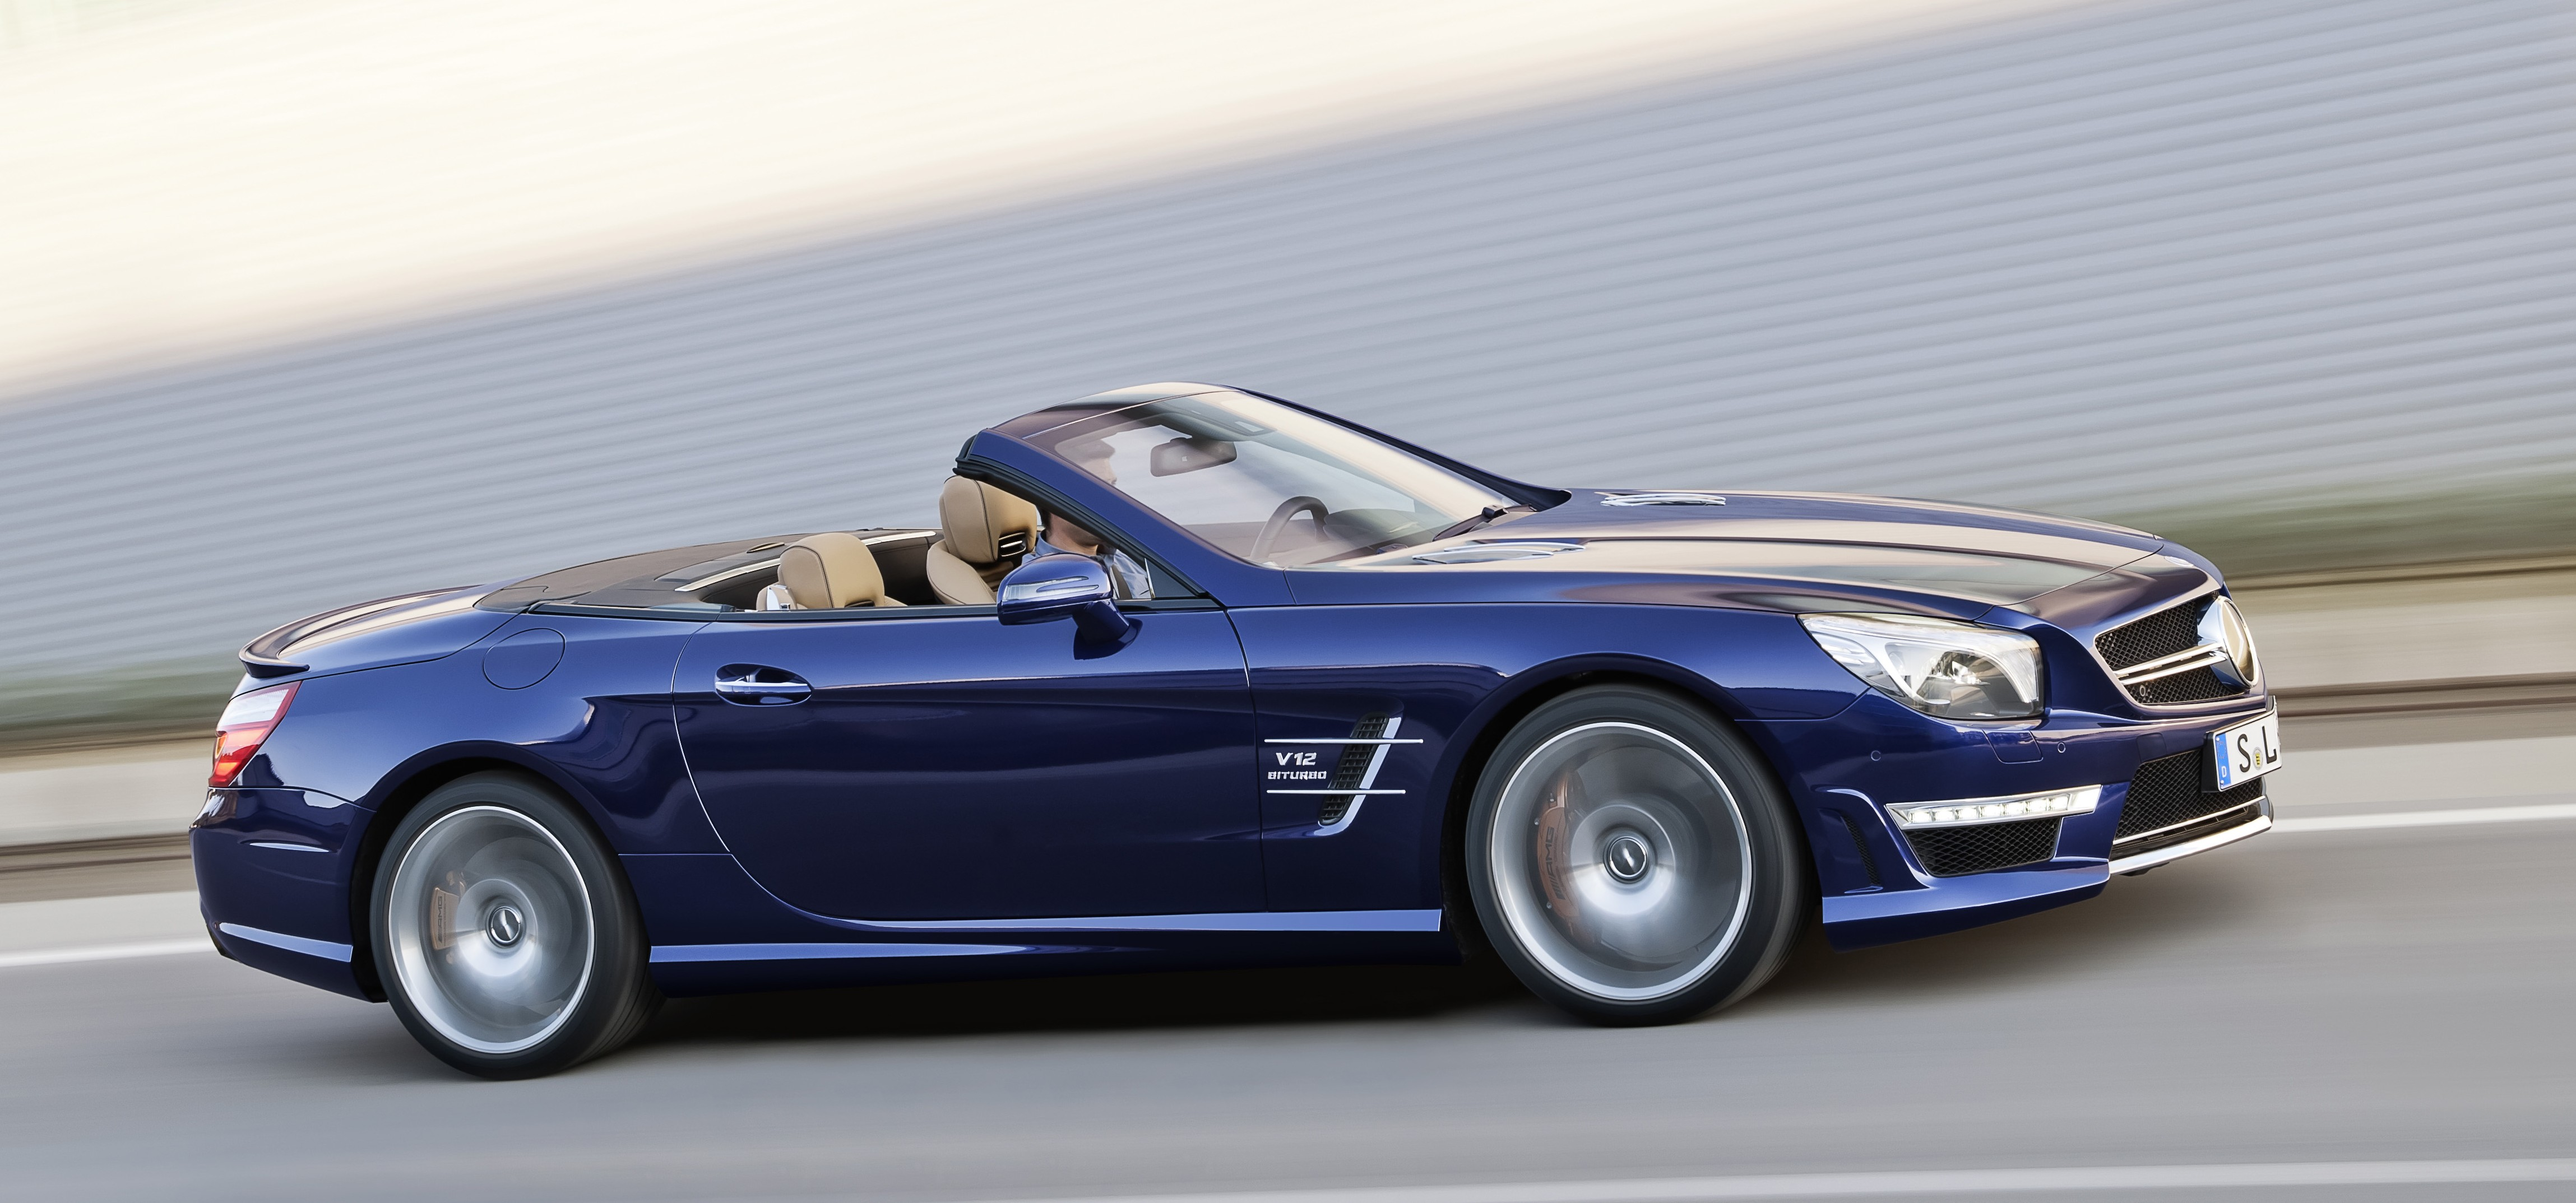 Mercedes benz sl 65 amg 650 hp and 1 000 nm image 94708 for Mercedes benz 650